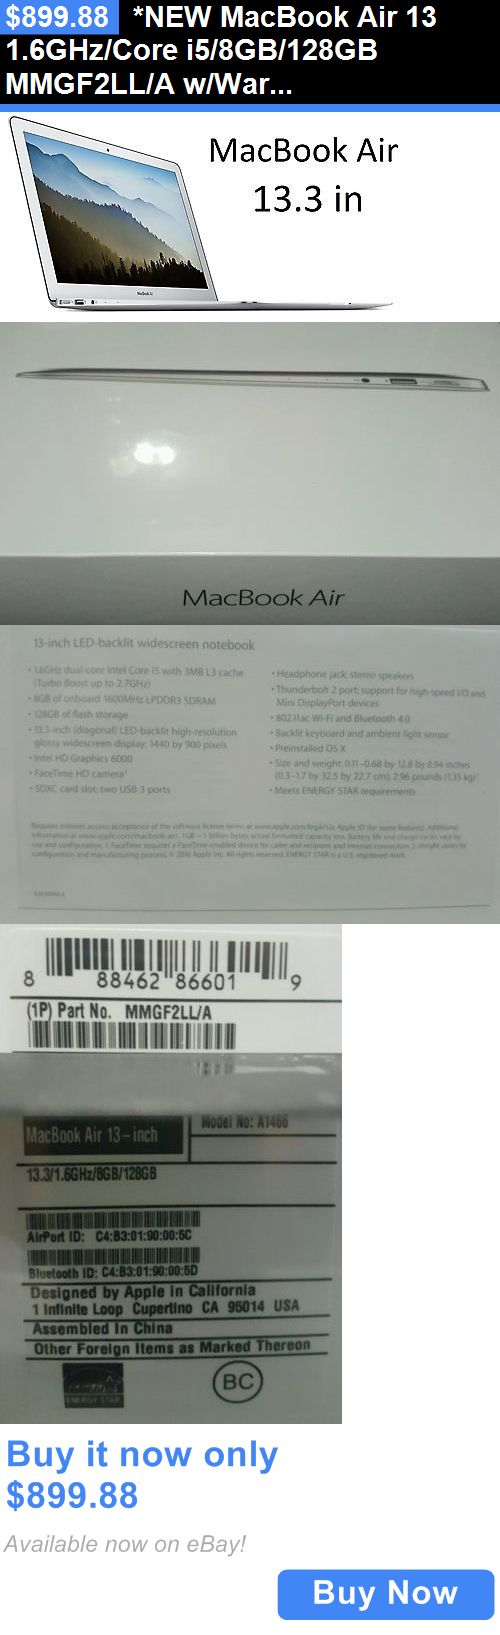 general for sale: *New Macbook Air 13 1.6Ghz/Core I5/8Gb/128Gb Mmgf2ll/A W/Warranty + Office365! BUY IT NOW ONLY: $899.88